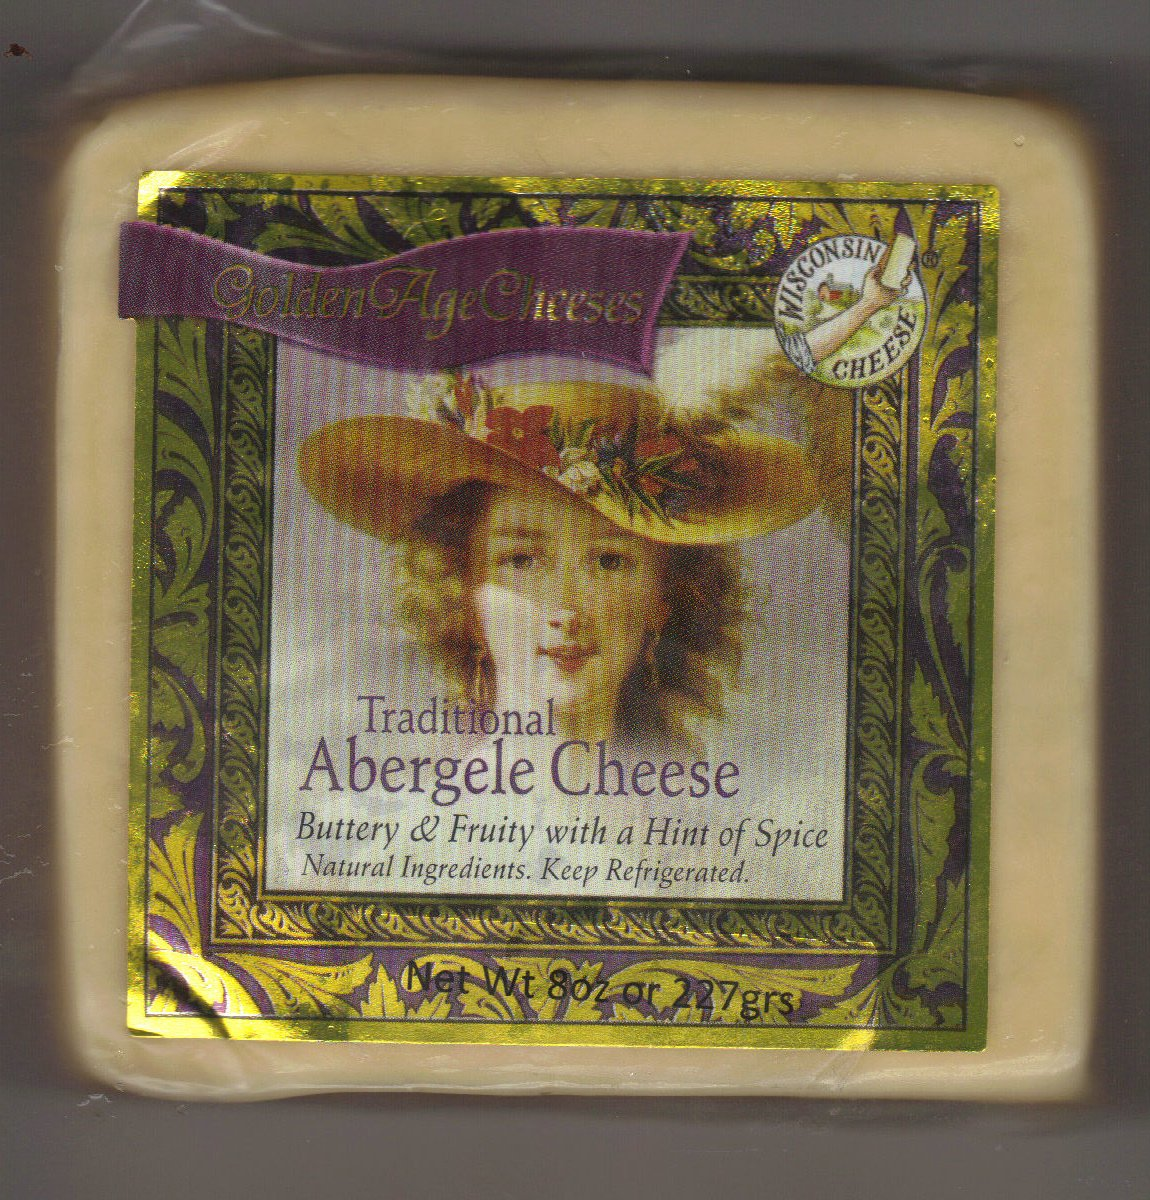 Golden Age Cheeses Buttery with a hint of spice 2lbs Real Wisconsin Cheese